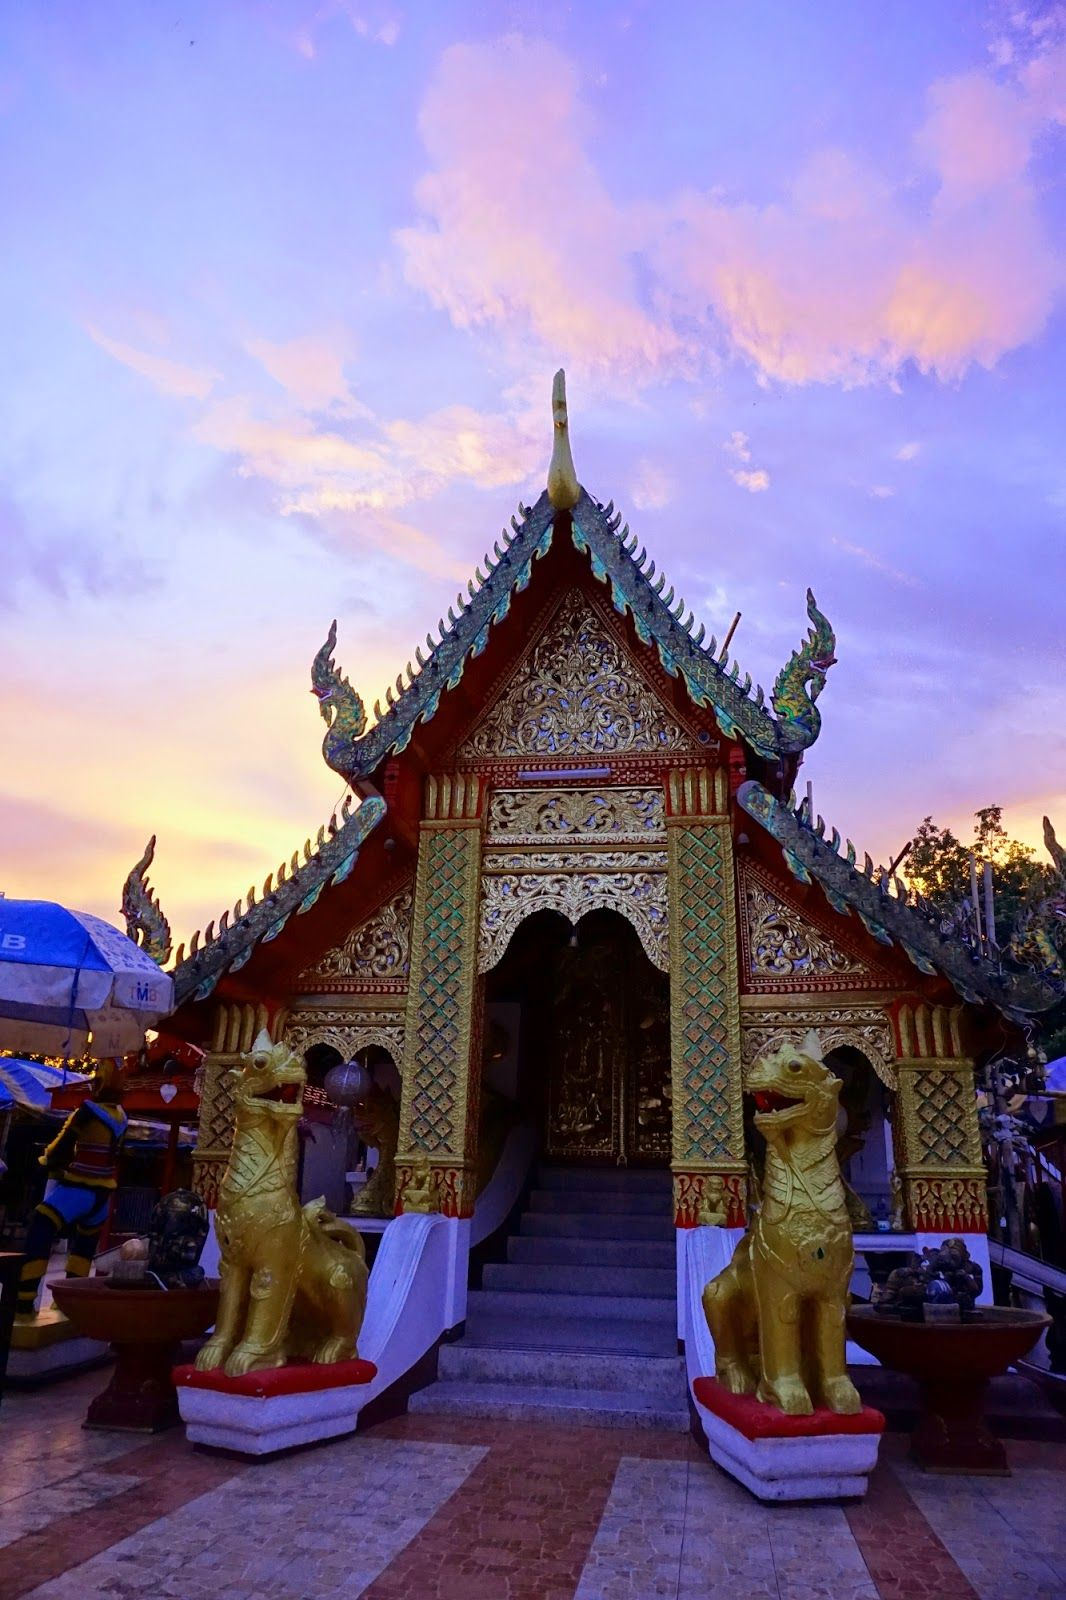 Local temple overlooking the south part of Chiang Mai